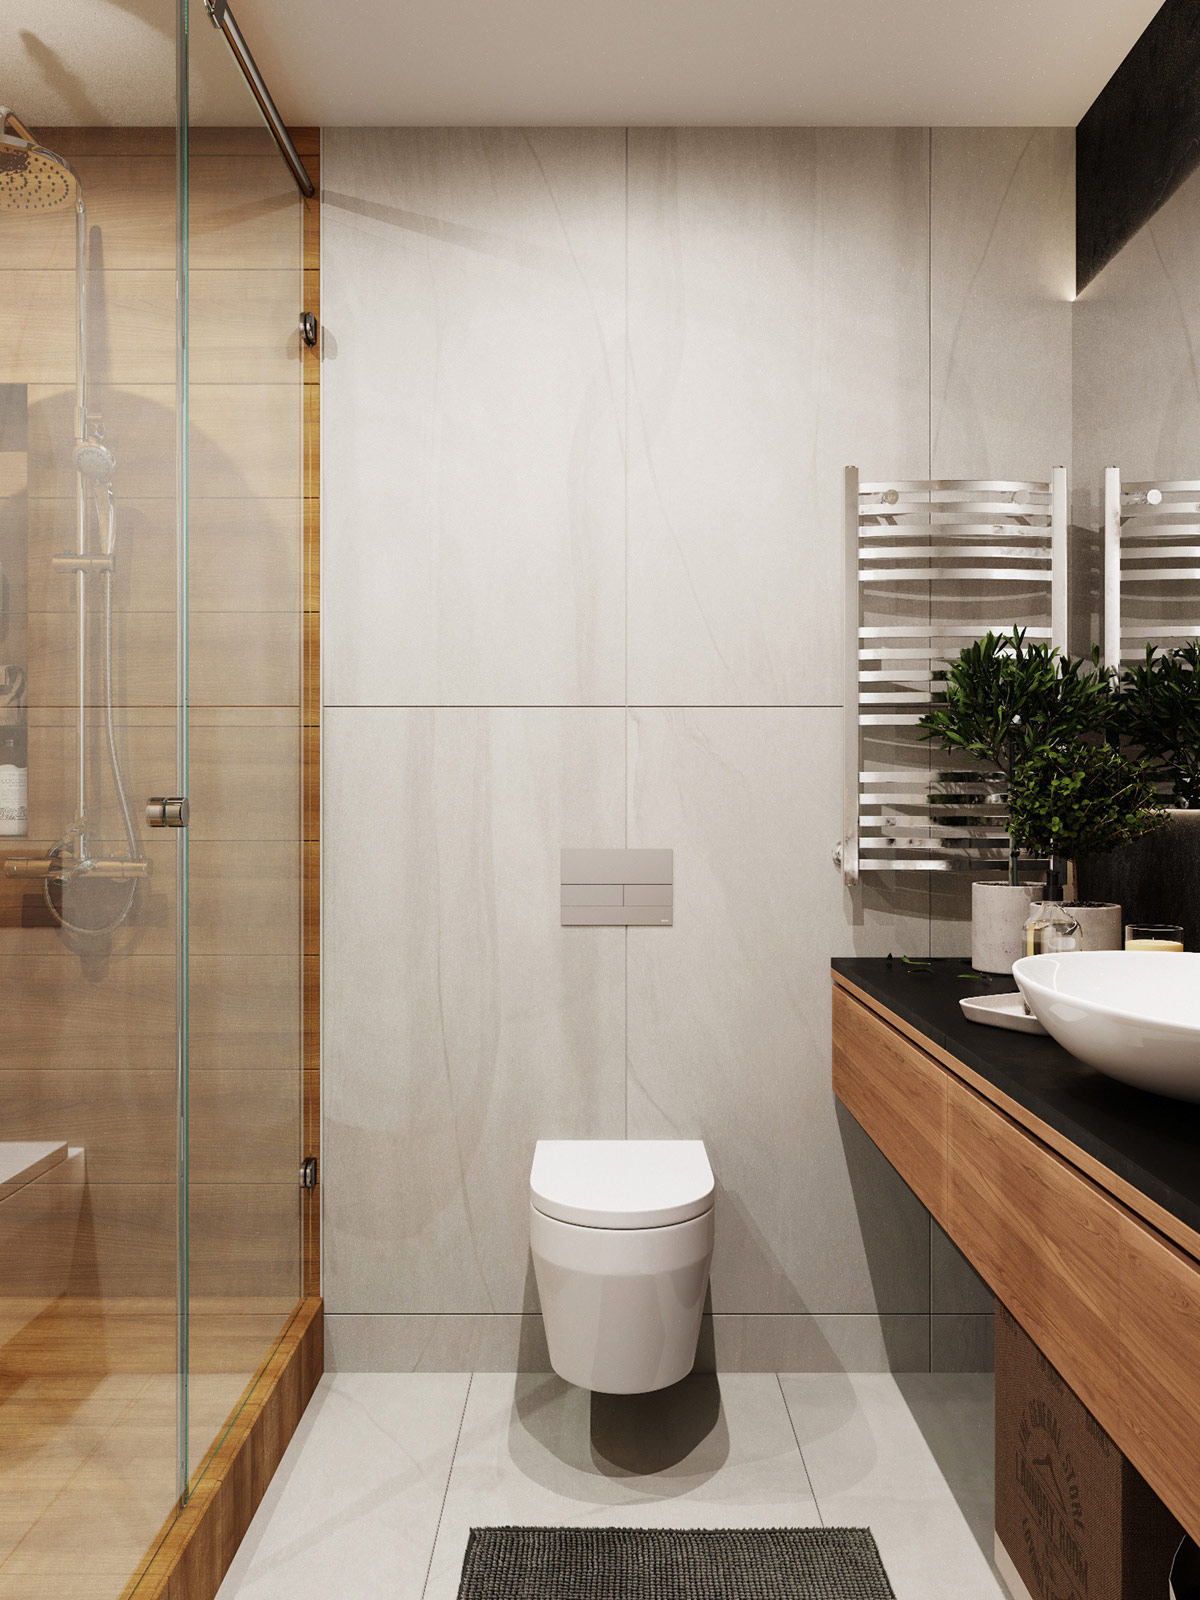 wood-shower-and-stone-clad-modern-bathroom-wall-treatments